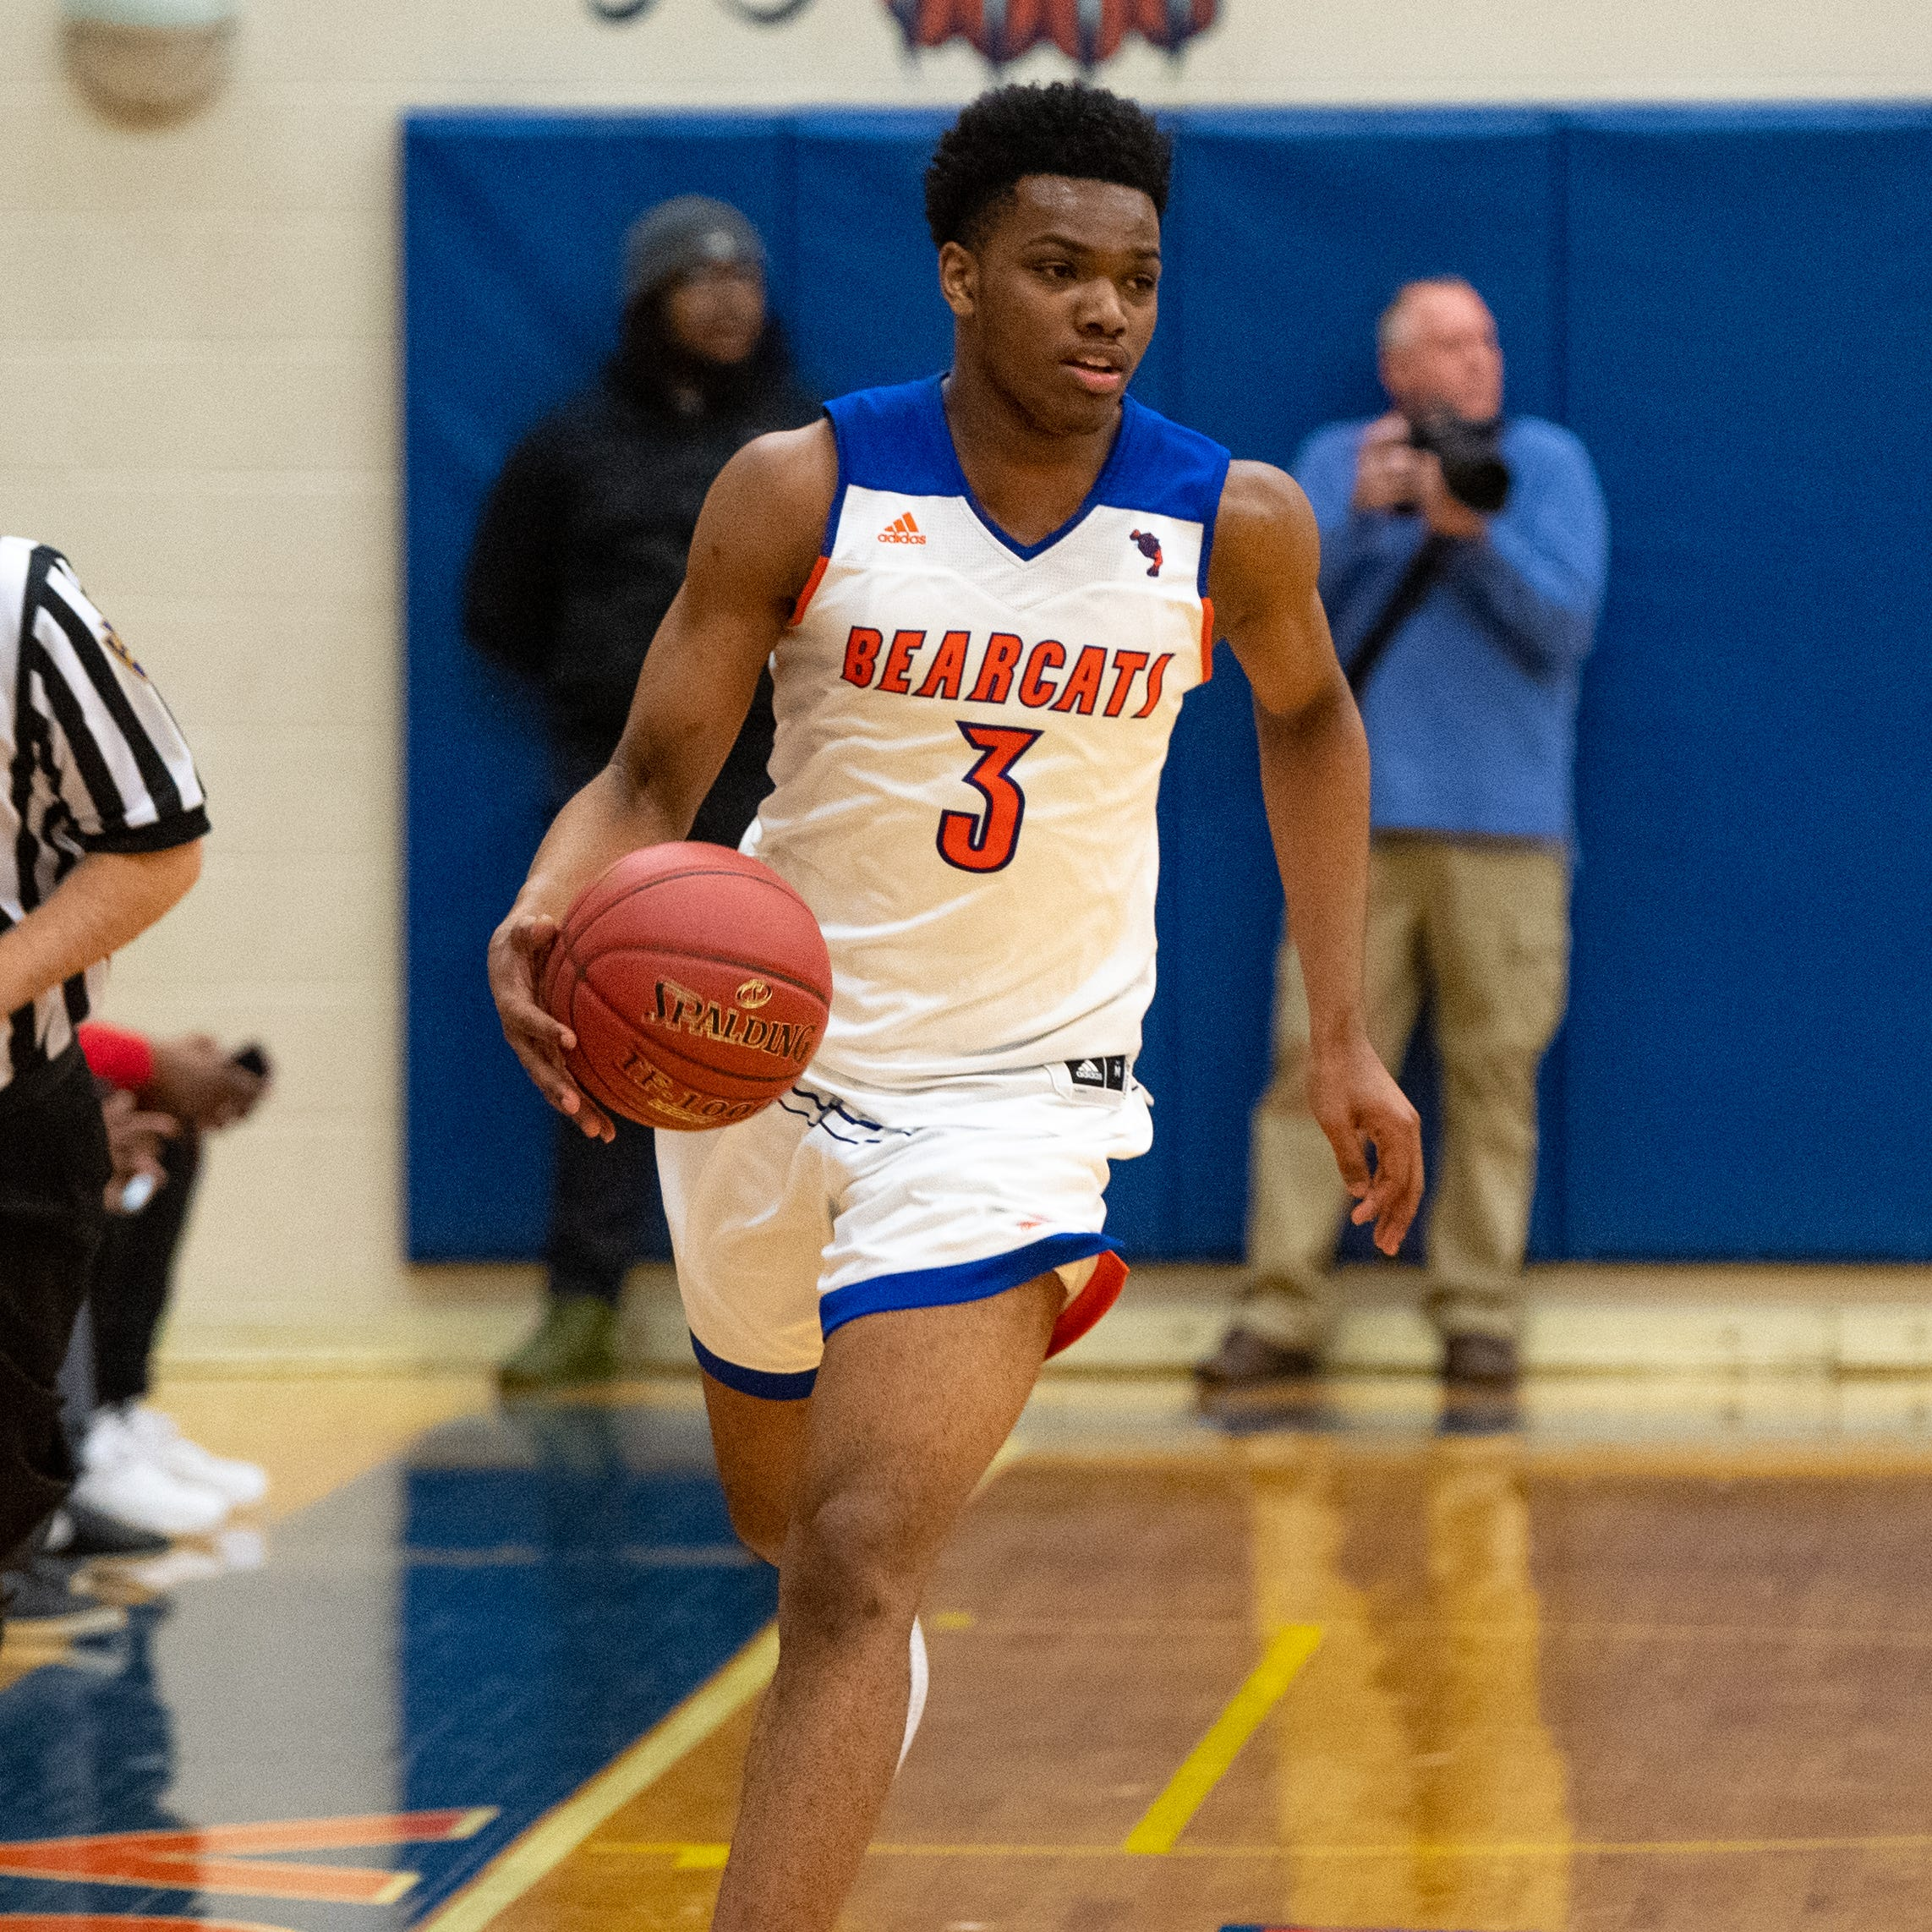 GameTimePA names 2019 York-Adams boys' basketball all-stars, player of the year